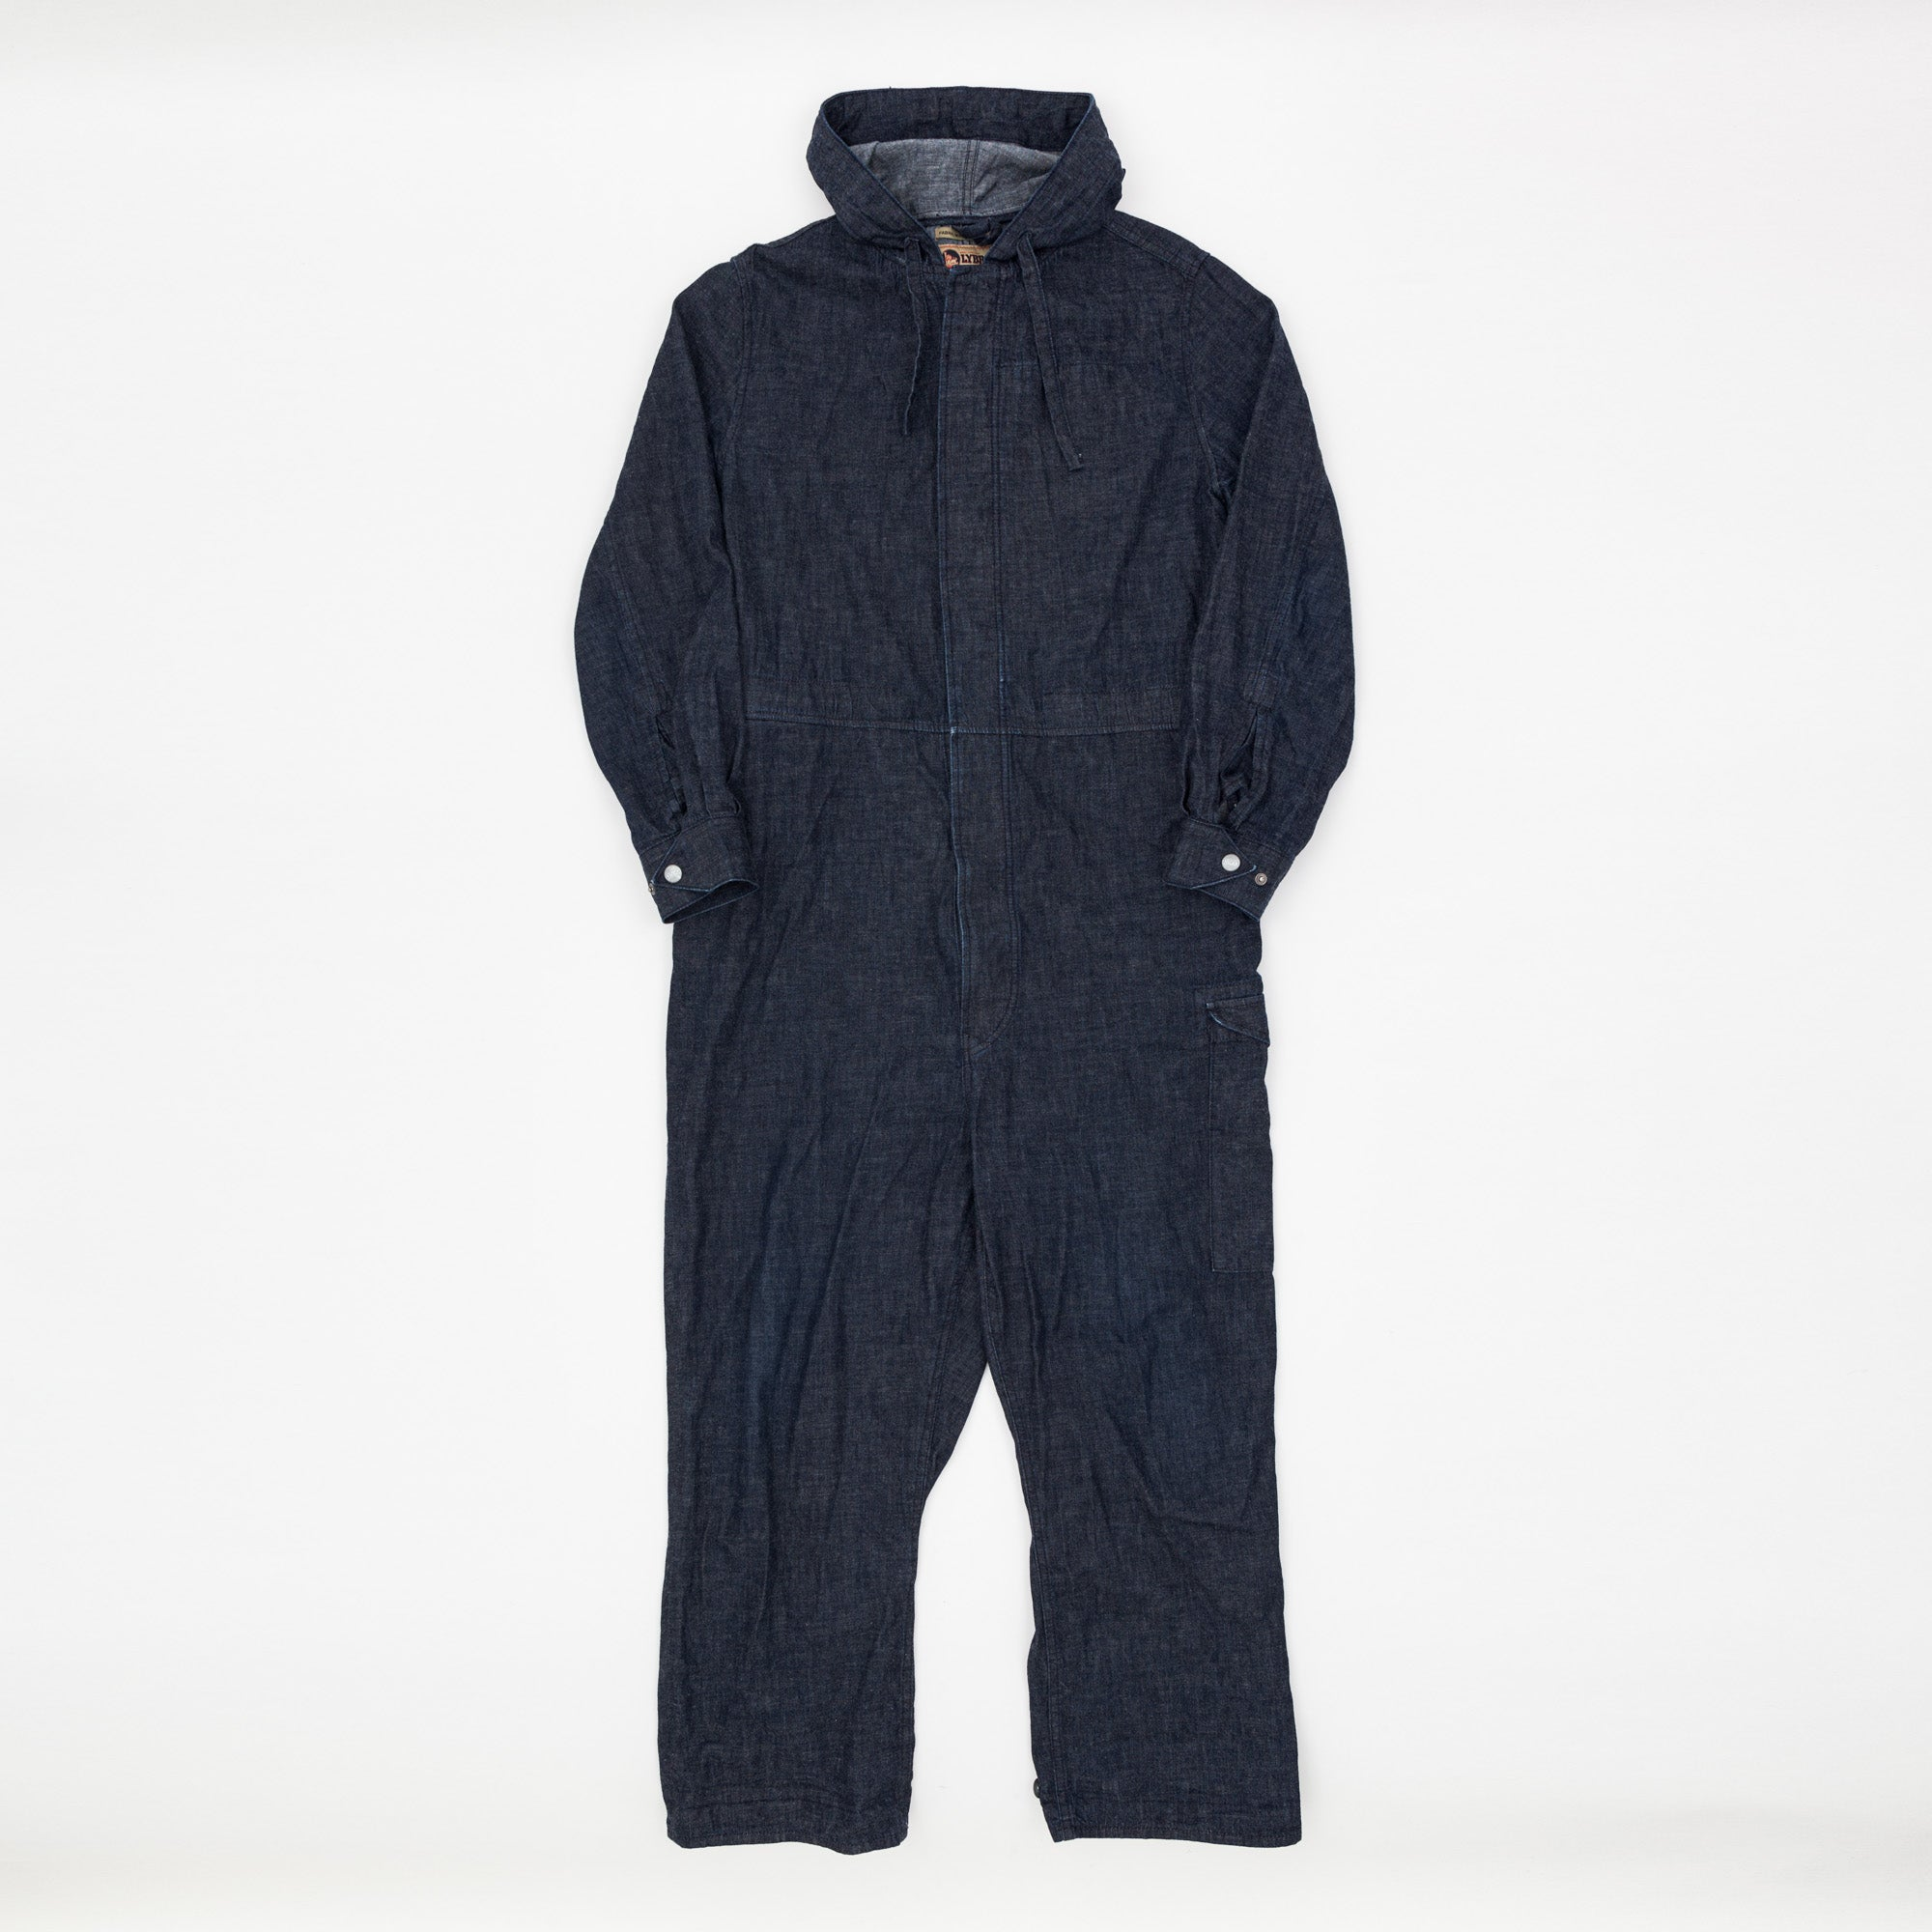 Lybro Japanese Denim Hooded Overalls